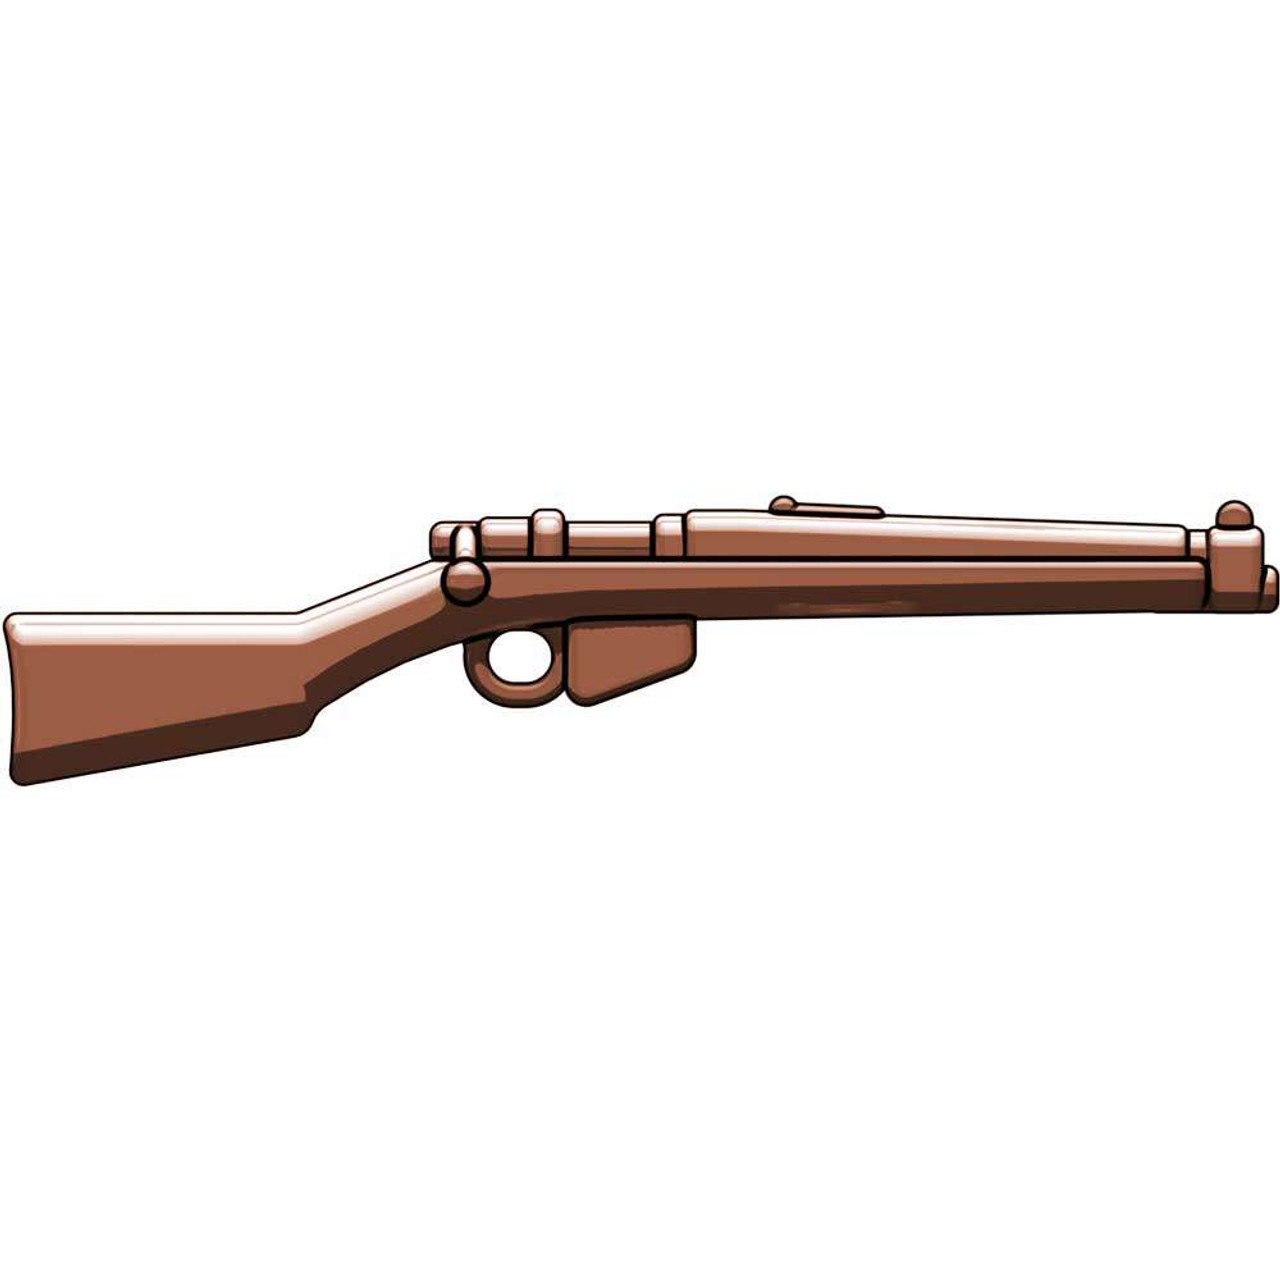 BrickArms Weapons Lee-Enfield SMLE 2.5-Inch [Brown]